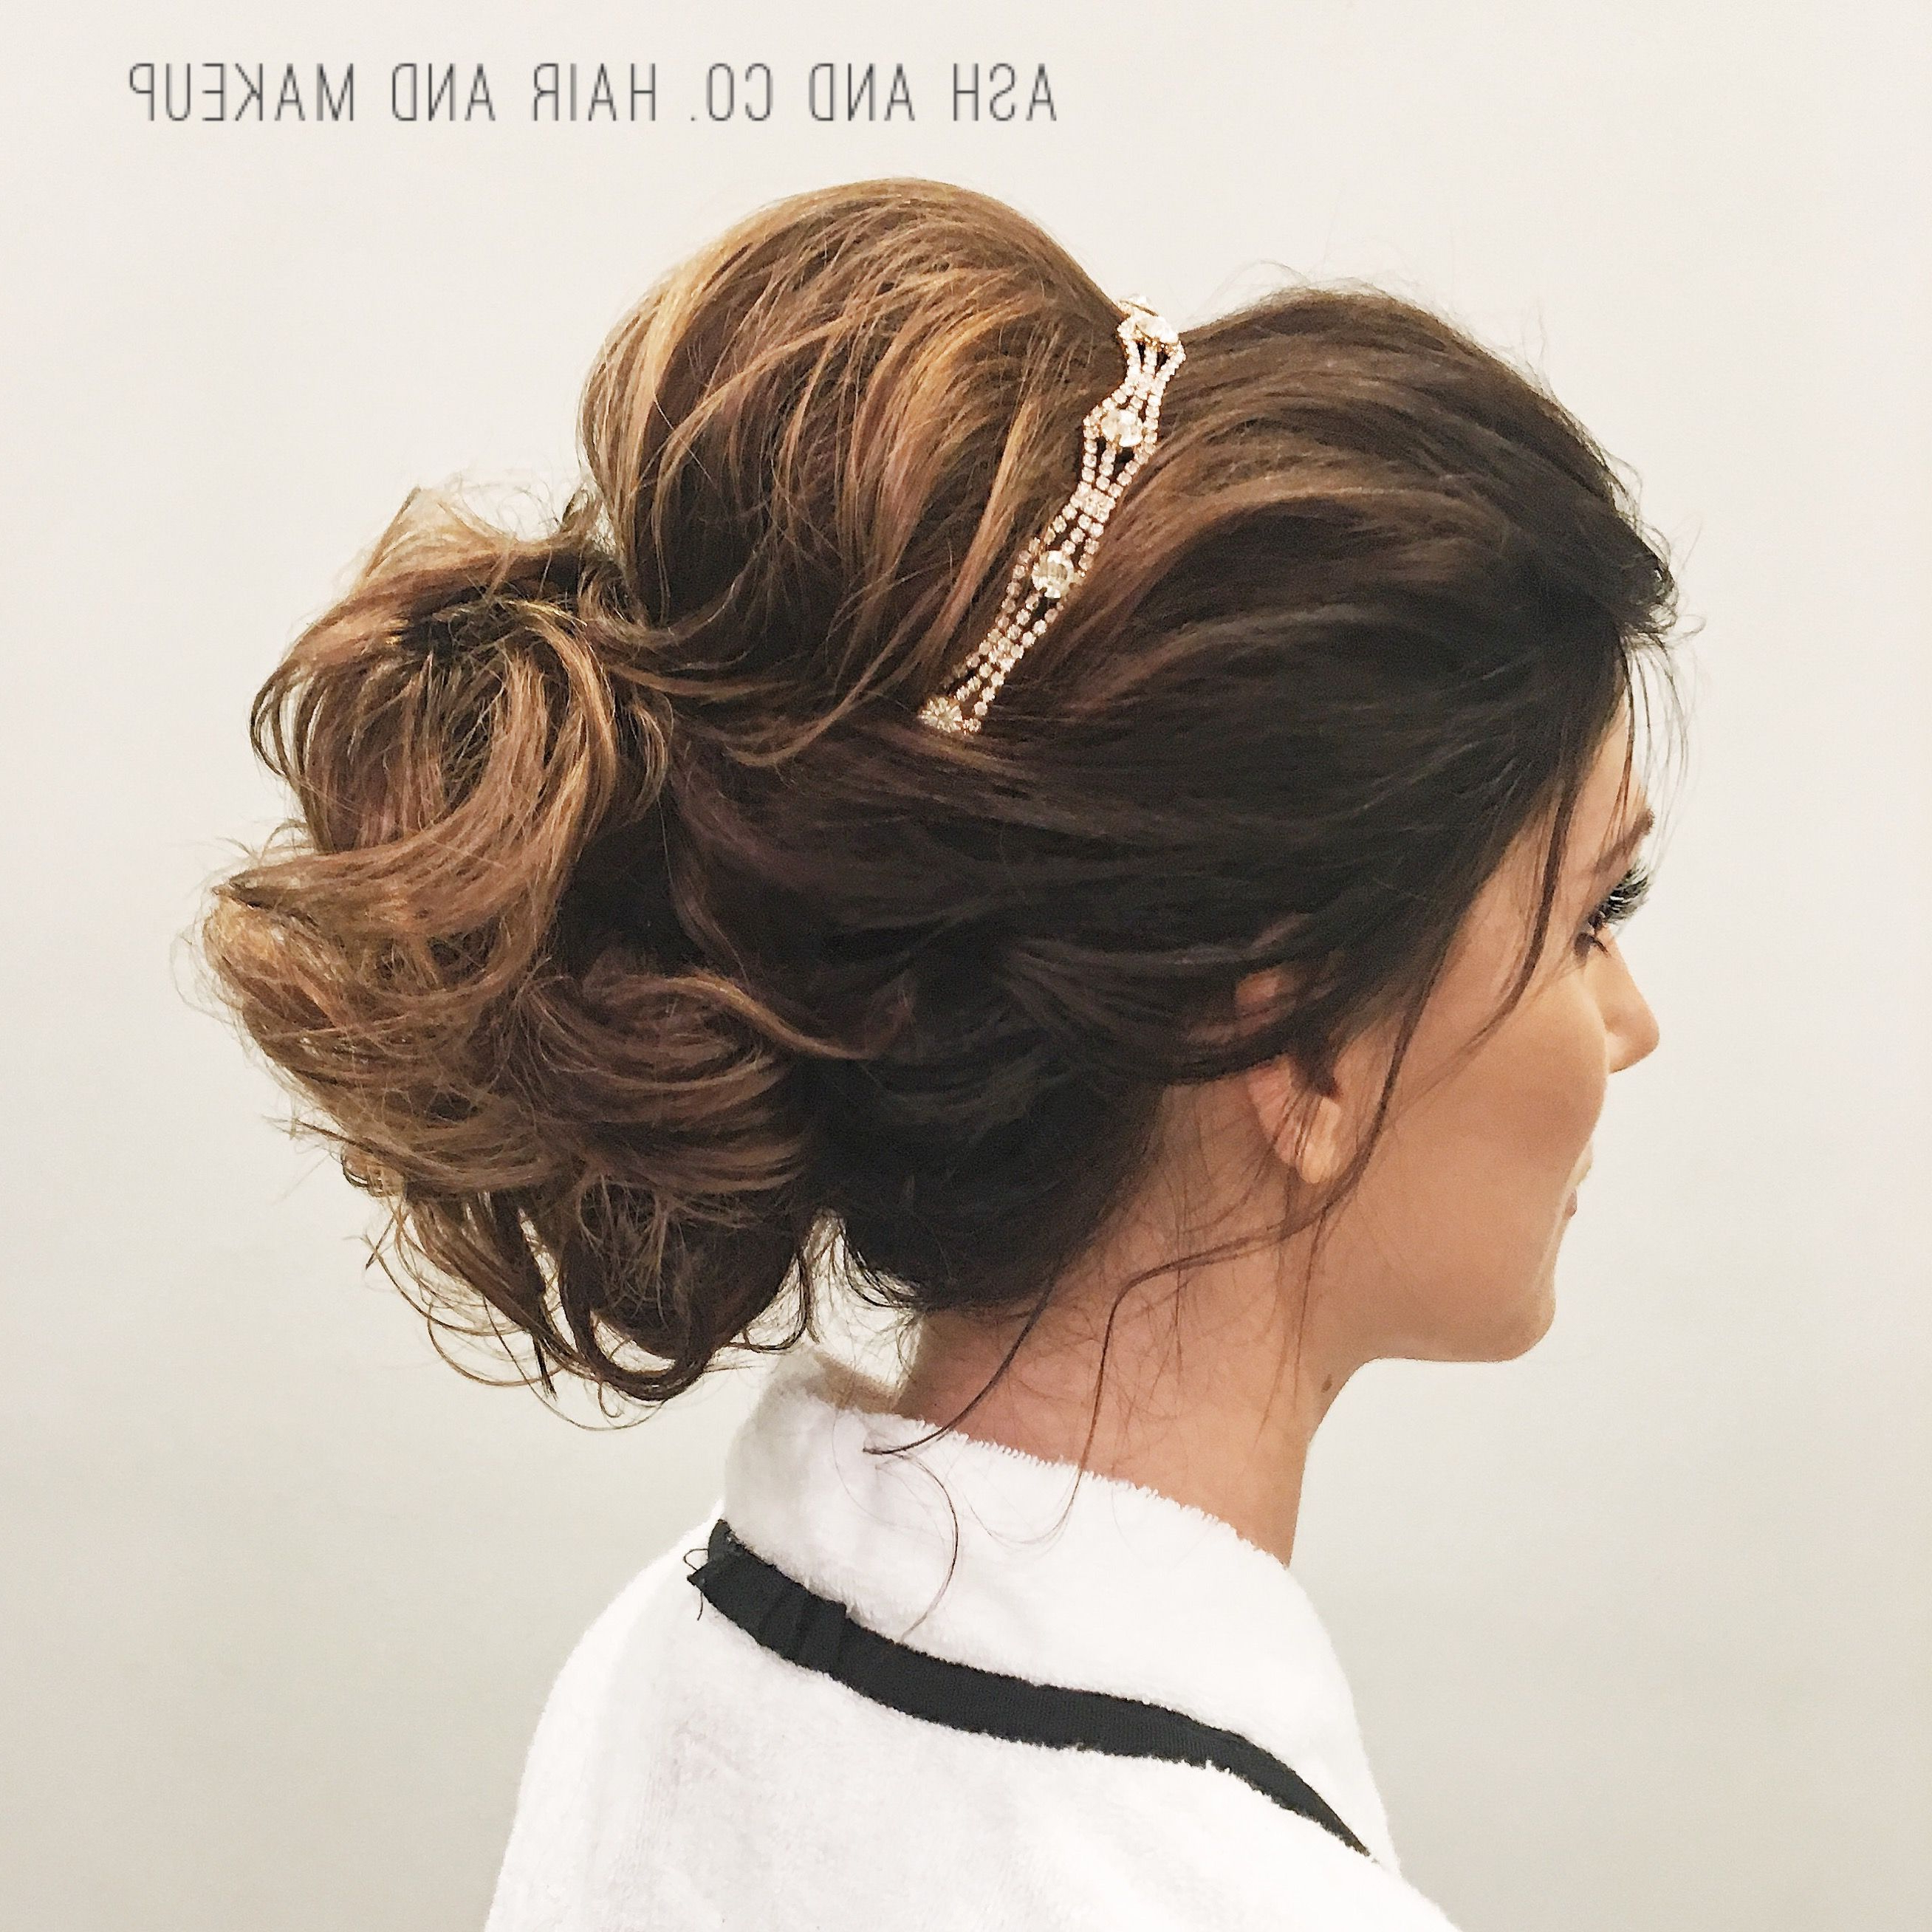 Latest Formal Bridal Hairstyles With Volume Throughout Bridal Hair Ideas, Soft Updo, Updo With Volume, Wedding Hairstyles (View 14 of 20)